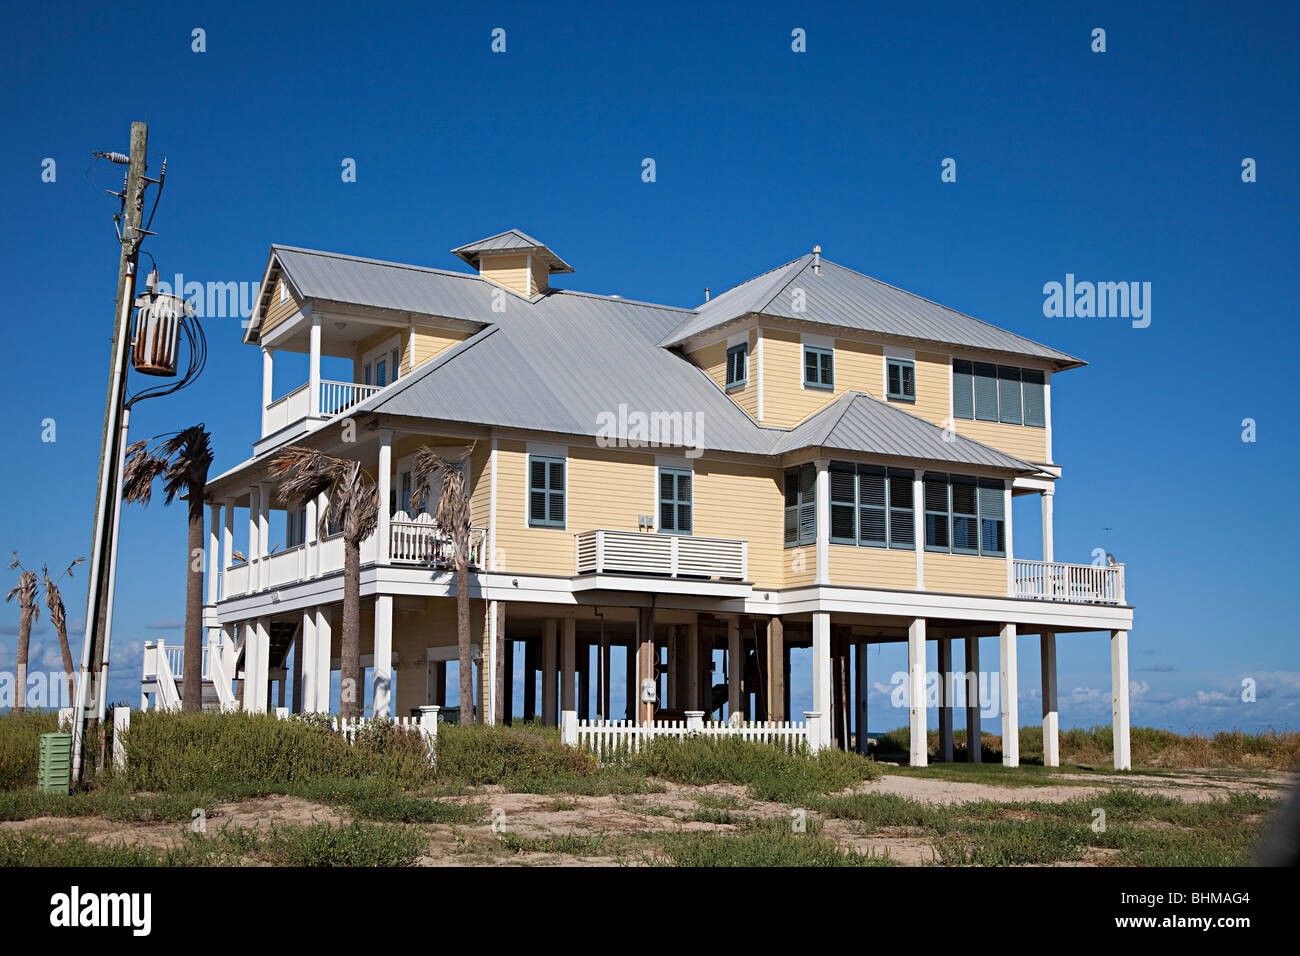 Wooden house on stilts on beach front galveston texas usa stock image